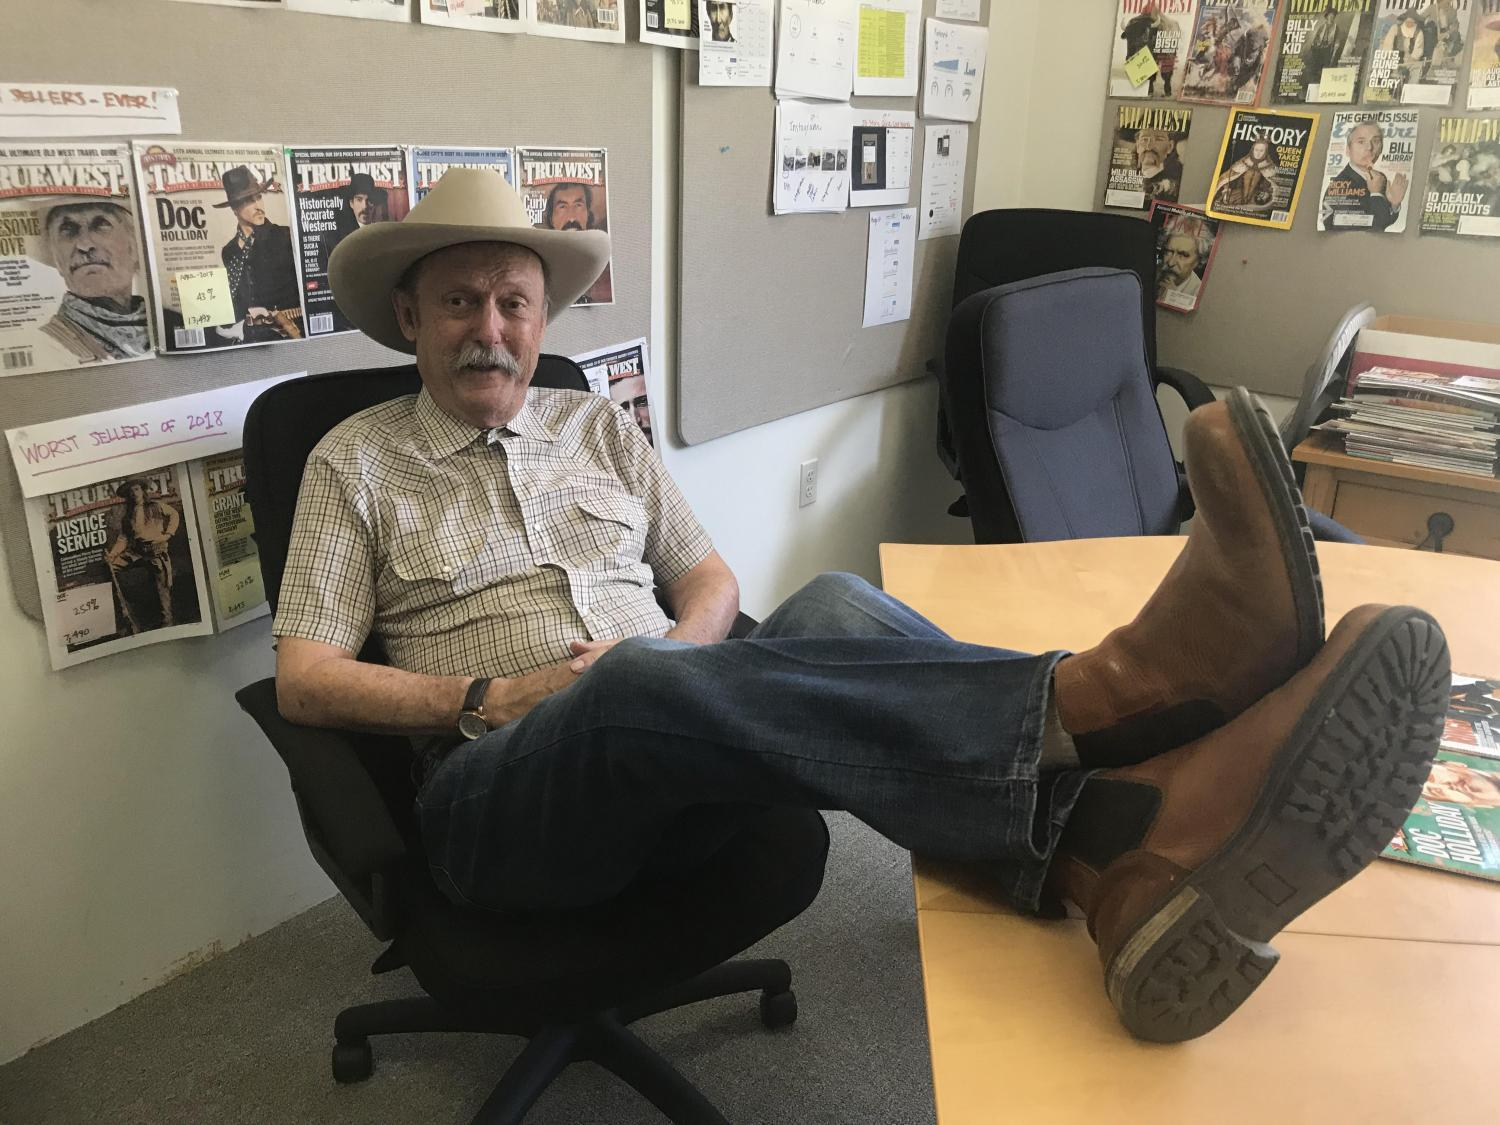 Bob Boze Bell is the executive editor of True West magazine.